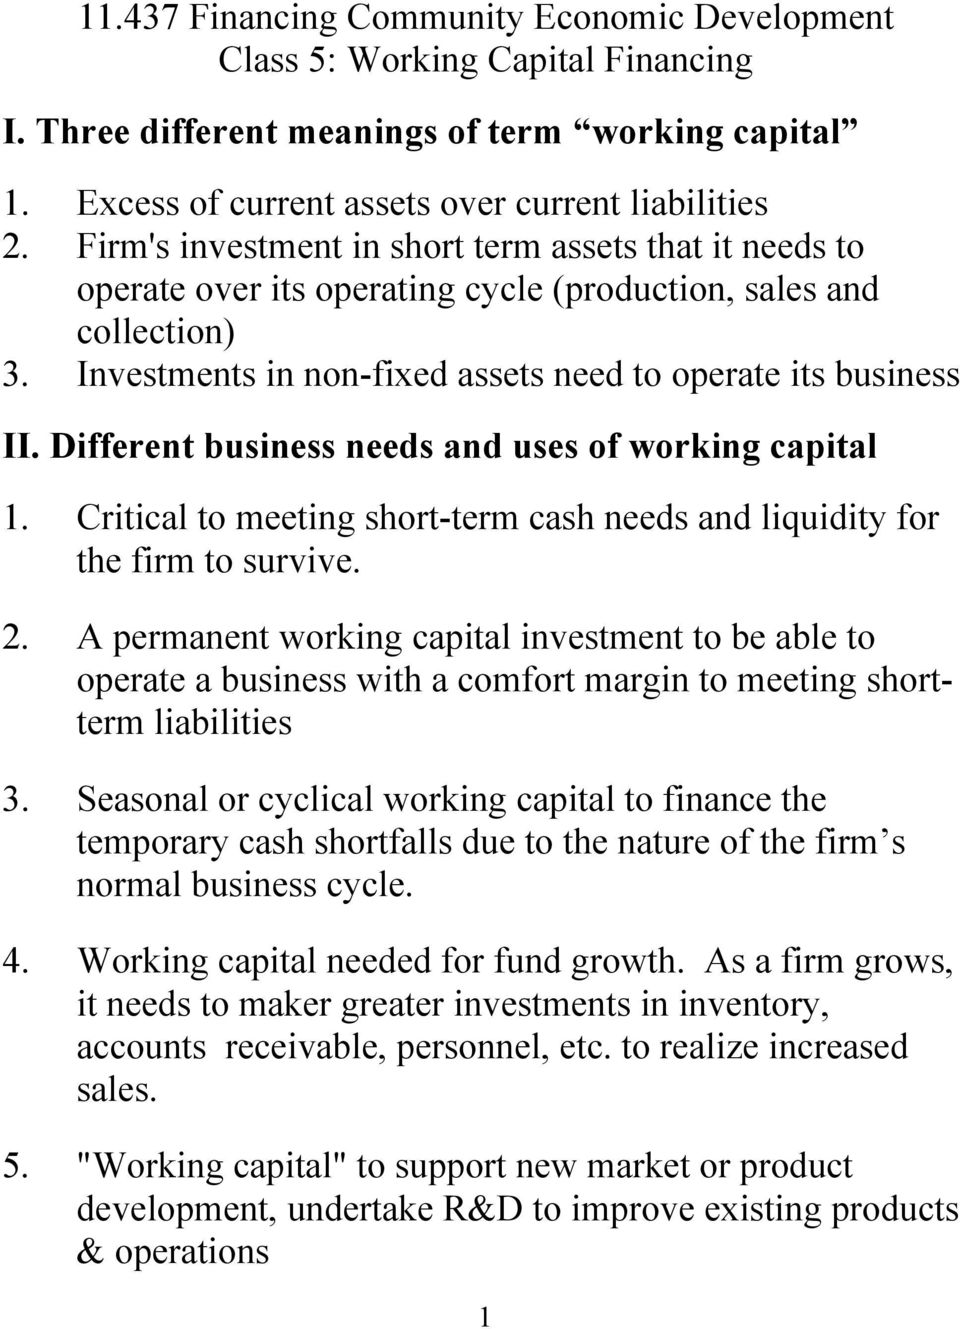 Different business needs and uses of working capital 1. Critical to meeting short-term cash needs and liquidity for the firm to survive. 2.